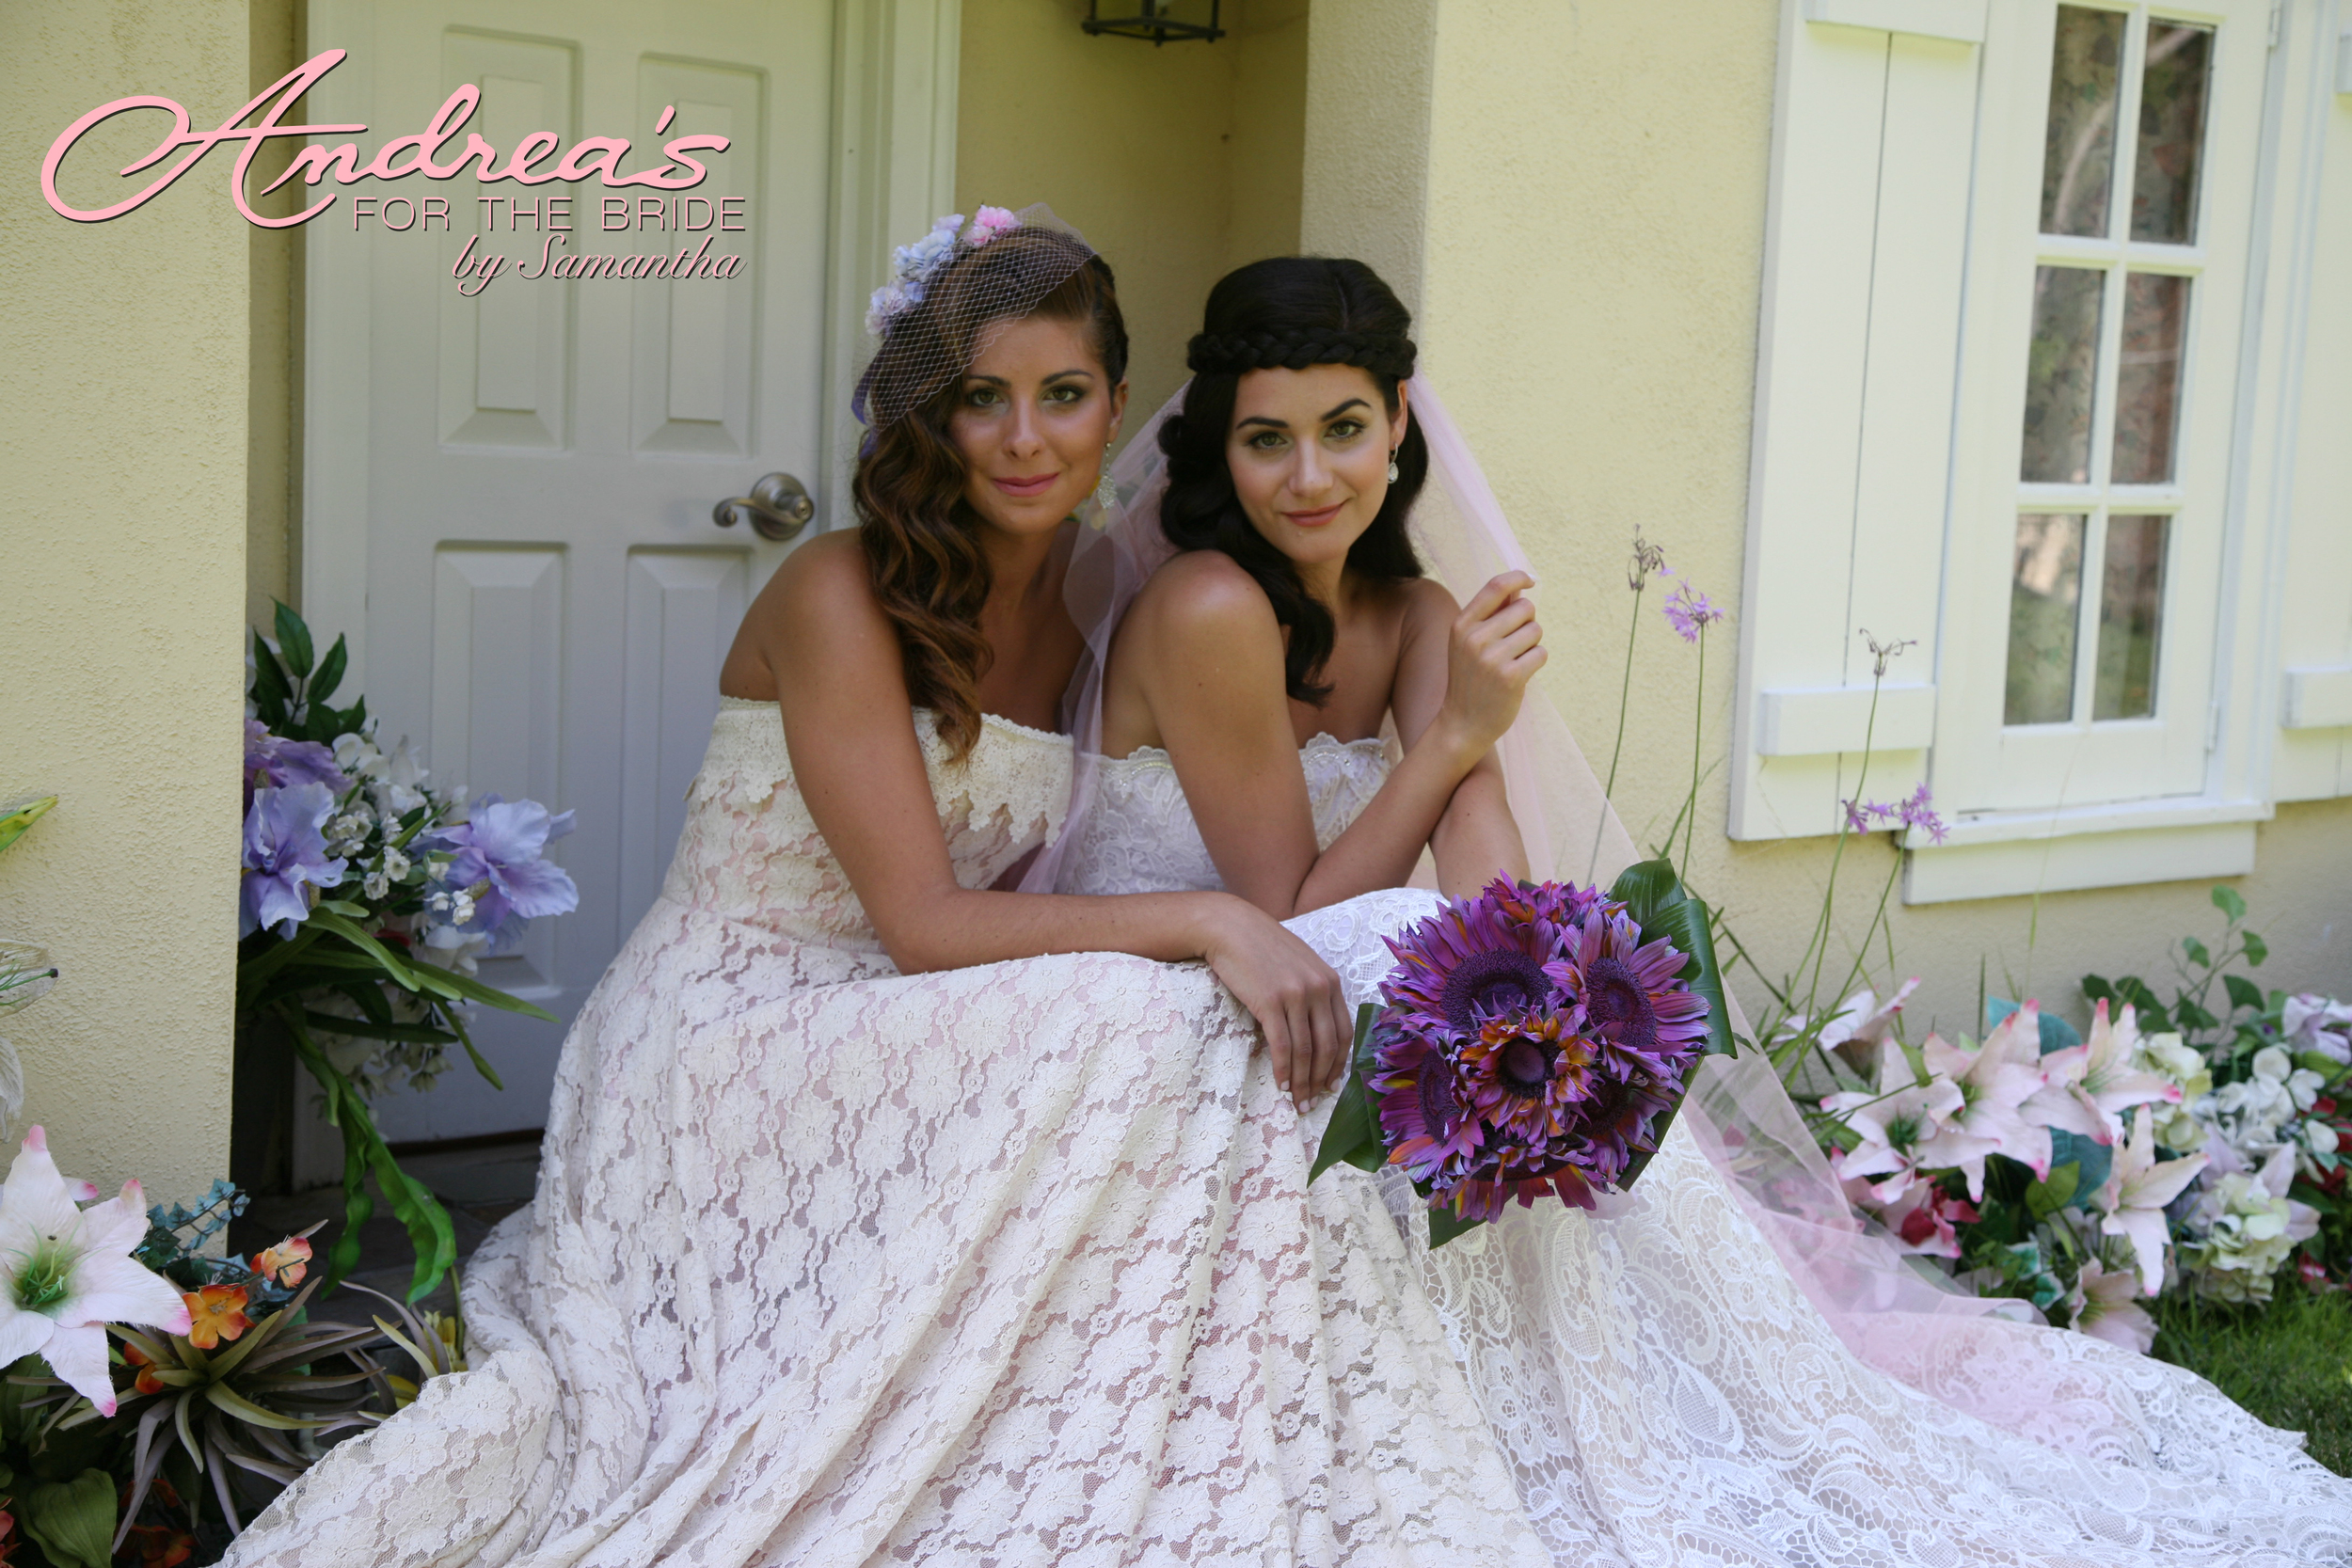 Andrea's For the Bride - Sister of Honor // The Overwhelmed Bride Wedding Blog + Southern California Wedding Planner